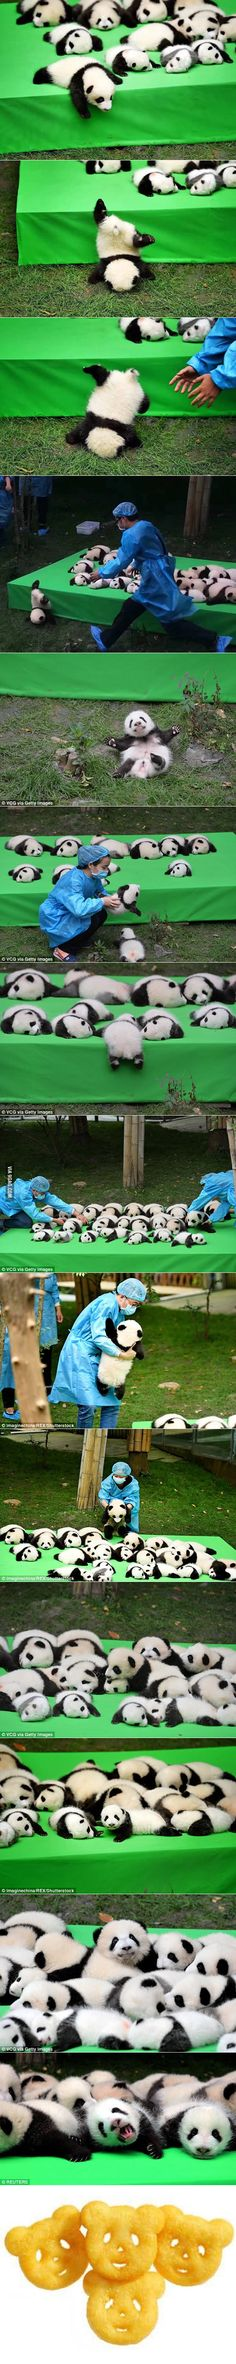 Baby Panda Face-plants And Tumbles On Its First Debut In China - 9GAG